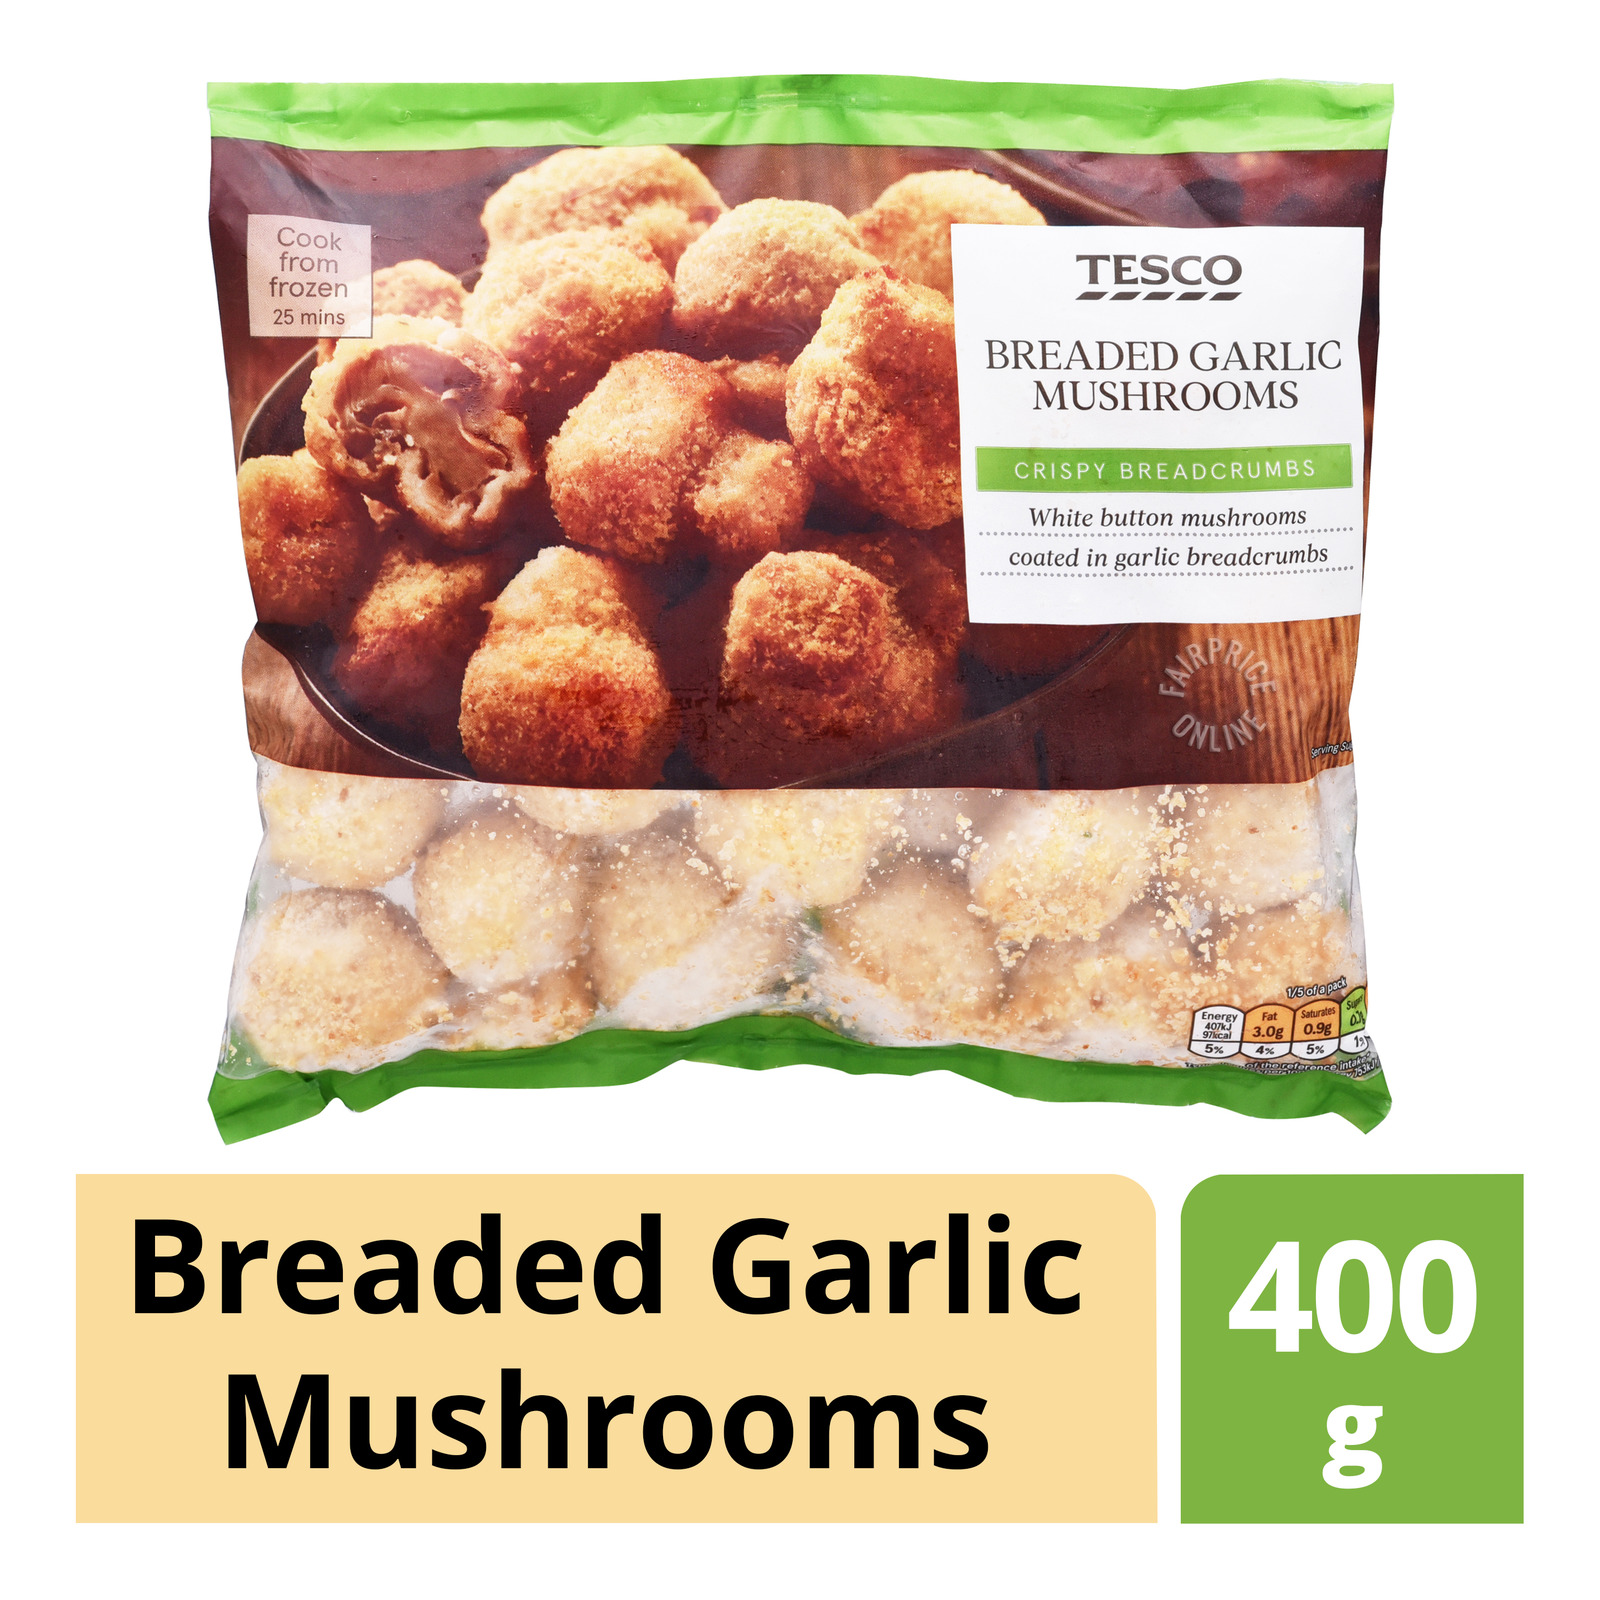 Tesco Frozen Breaded Garlic Mushrooms